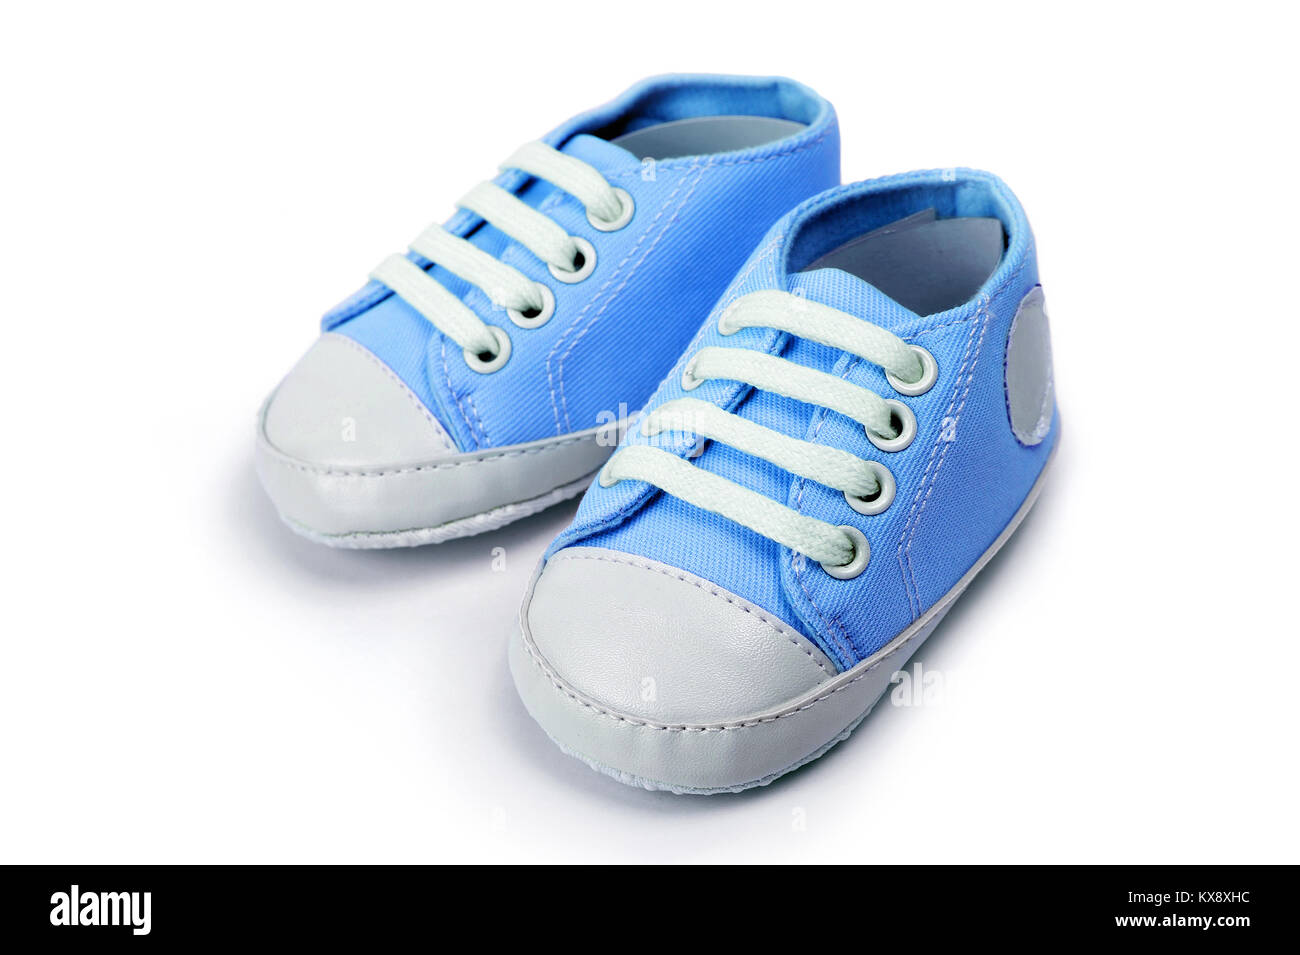 Blue Baby Shoes High Resolution Stock